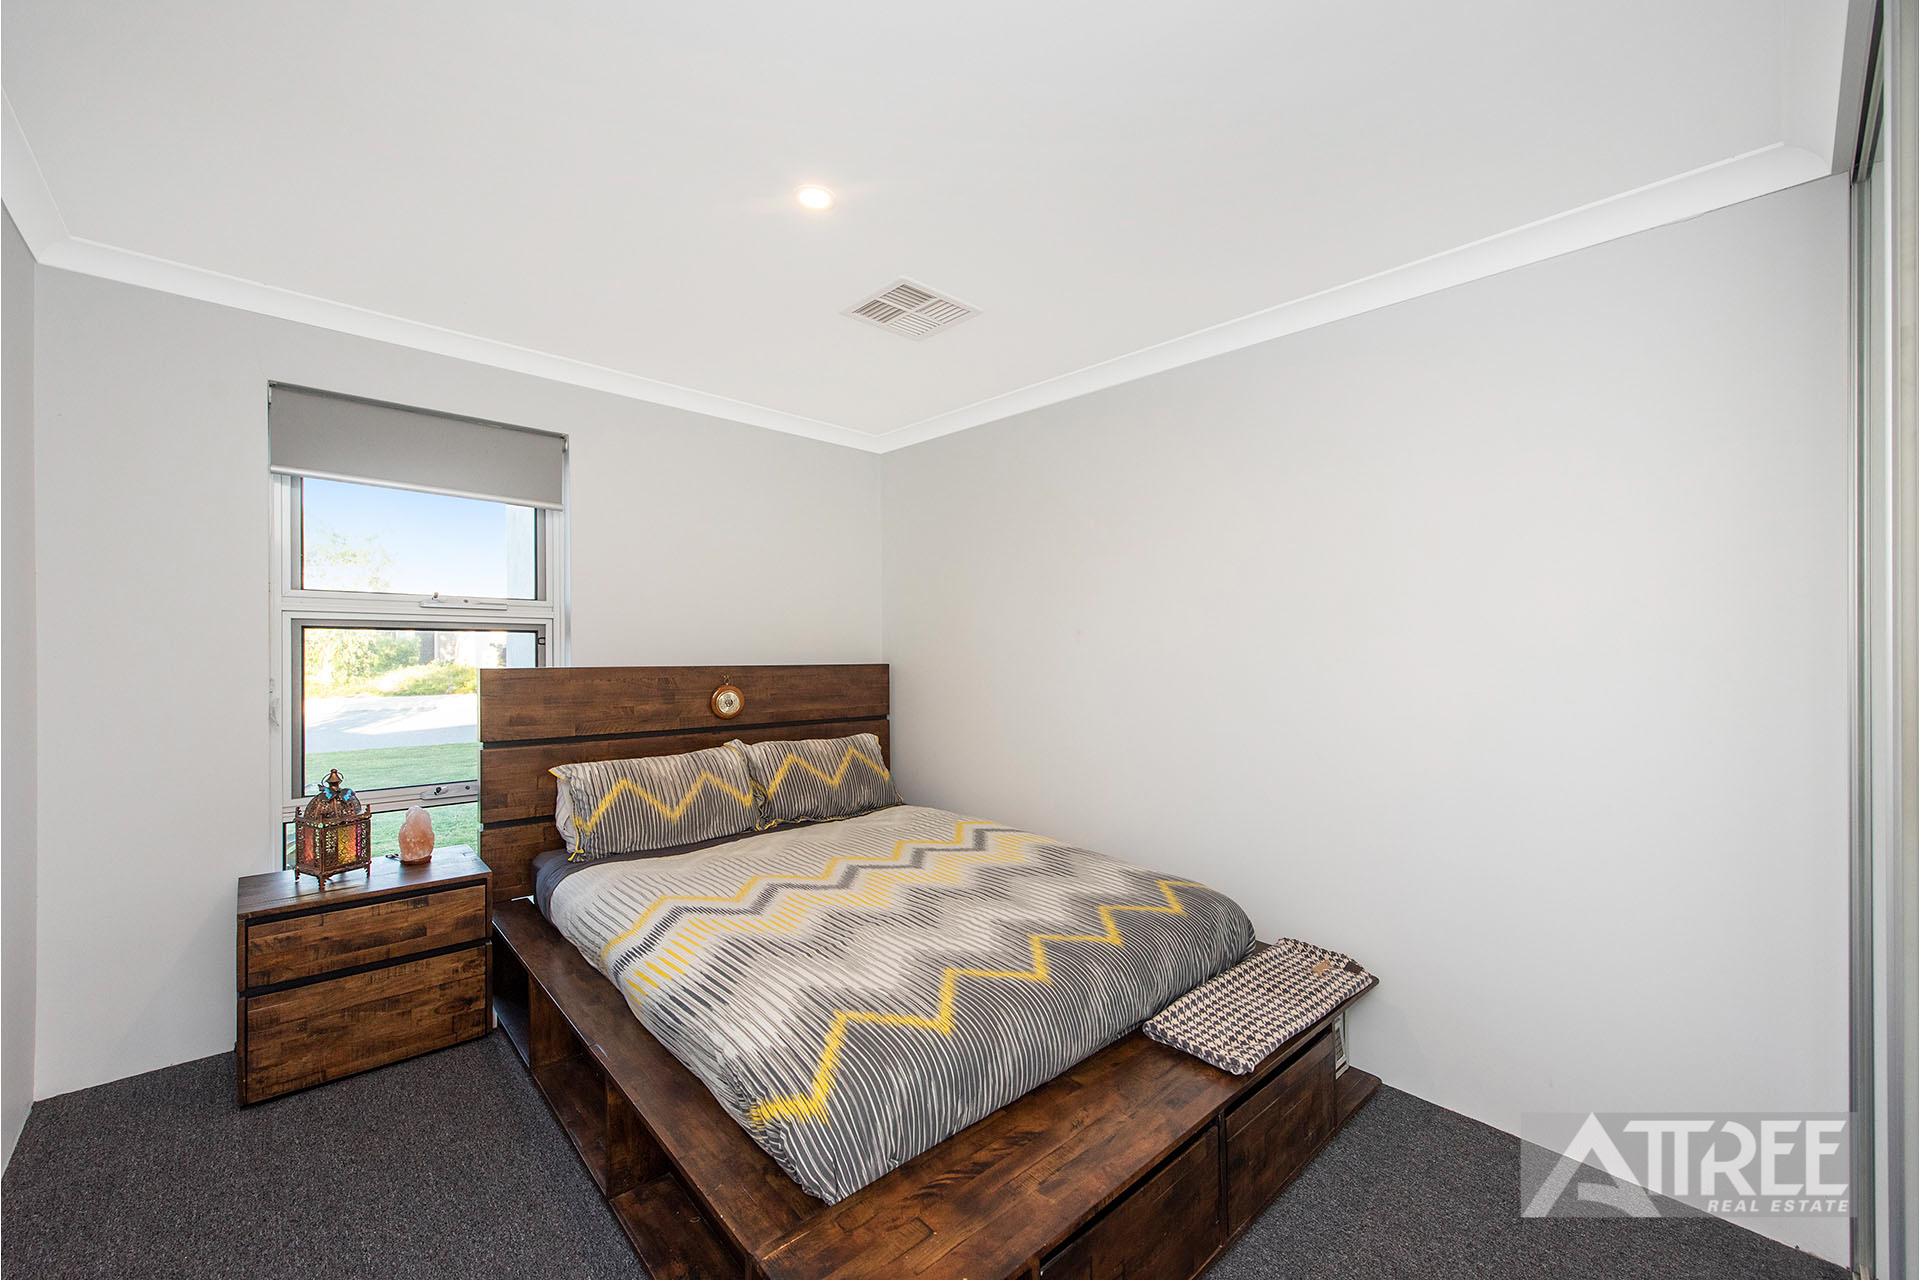 Property for sale in WELLARD, 15 Jamison Grove : Attree Real Estate